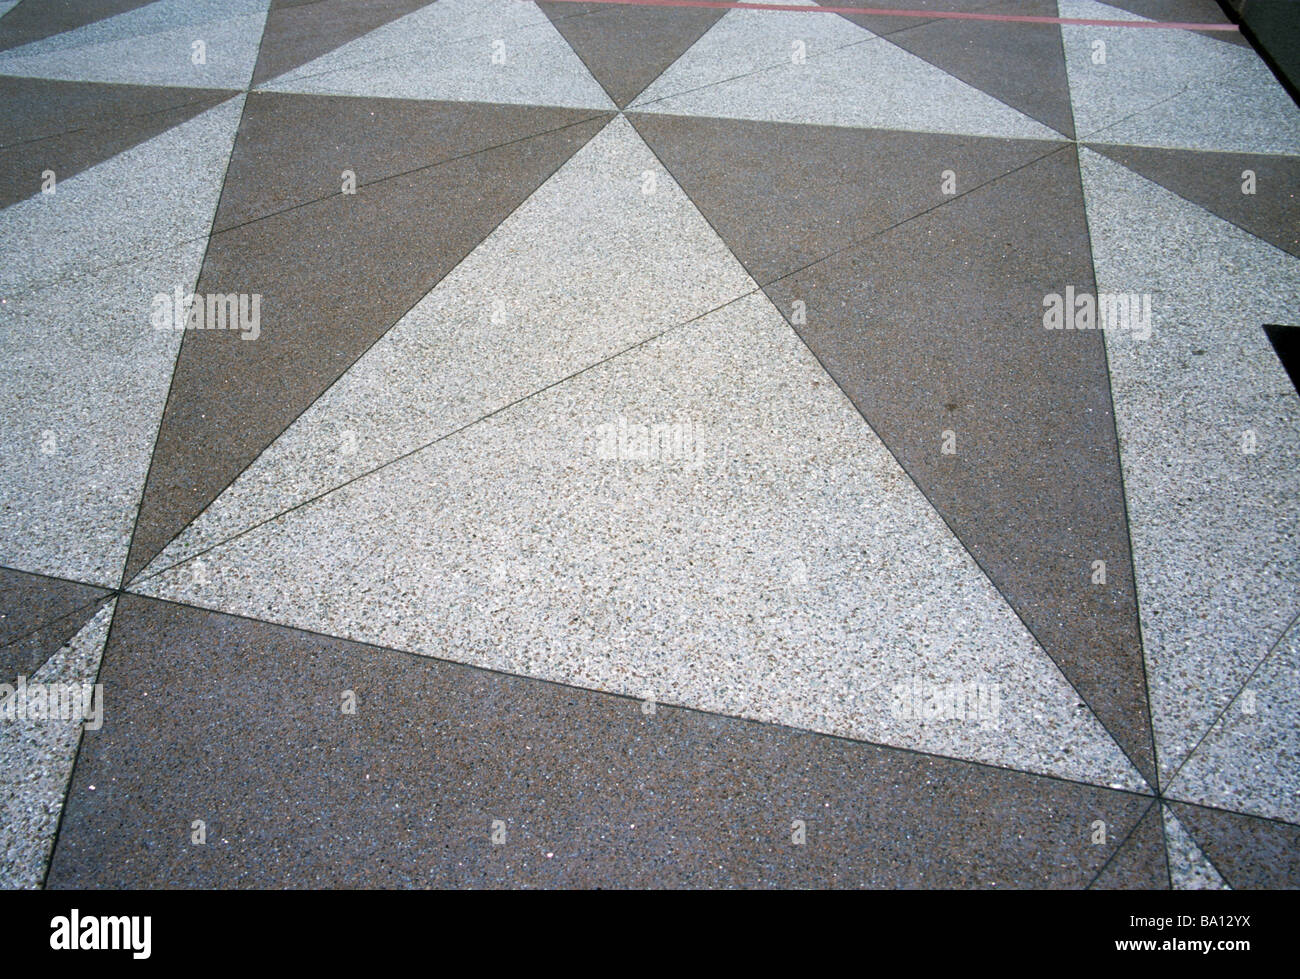 triangle tile terrazo floor geometry pattern math repetition shape ...